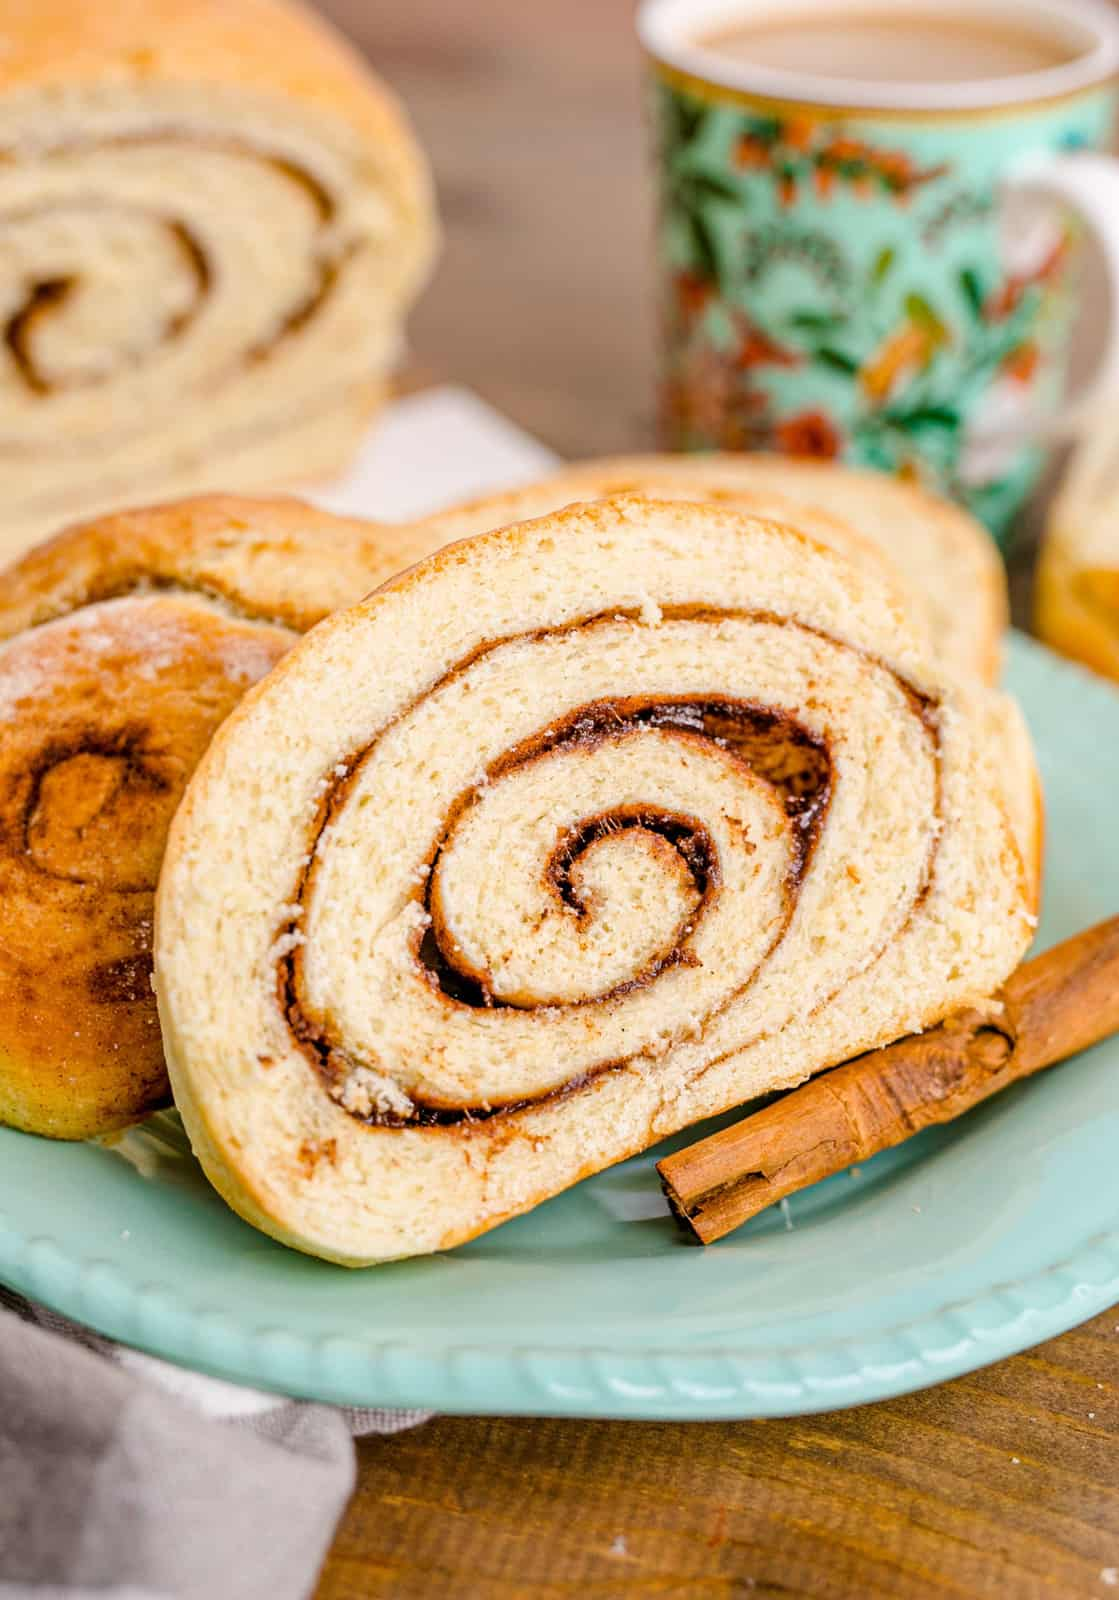 Slices of Cinnamon Swirl Bread on blue/green plate with cinnamon stick and cup of coffee in background.